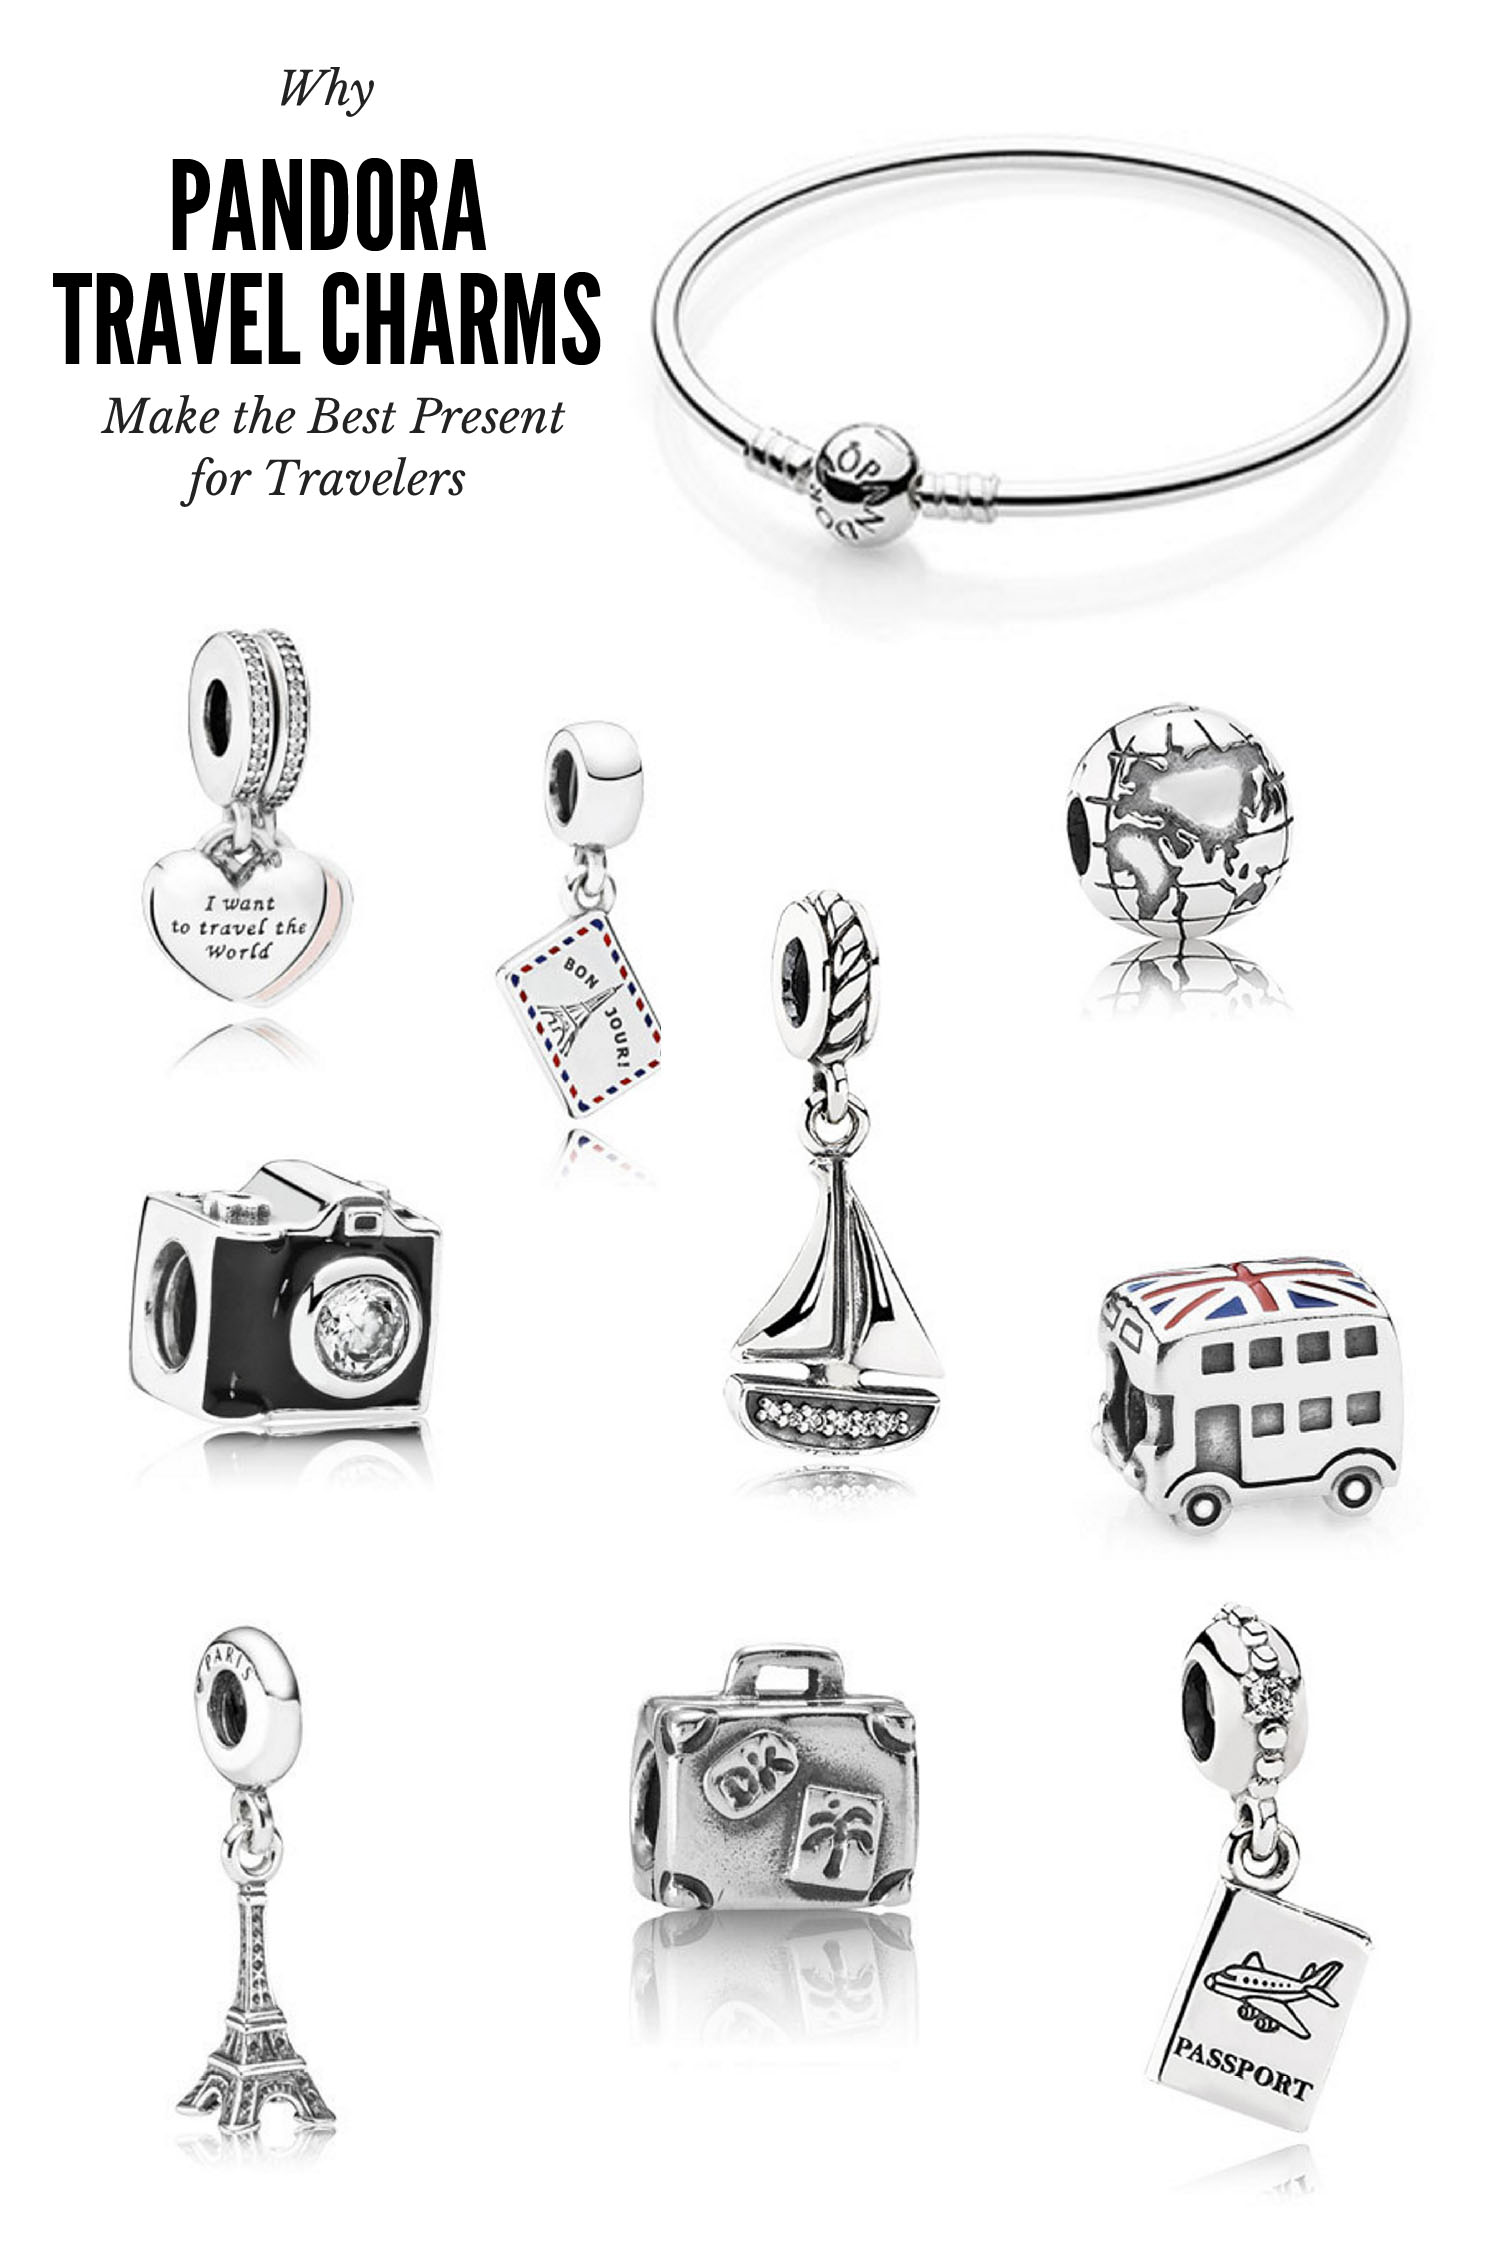 Why Pandora Travel Charms Make the Best Present for Travelers